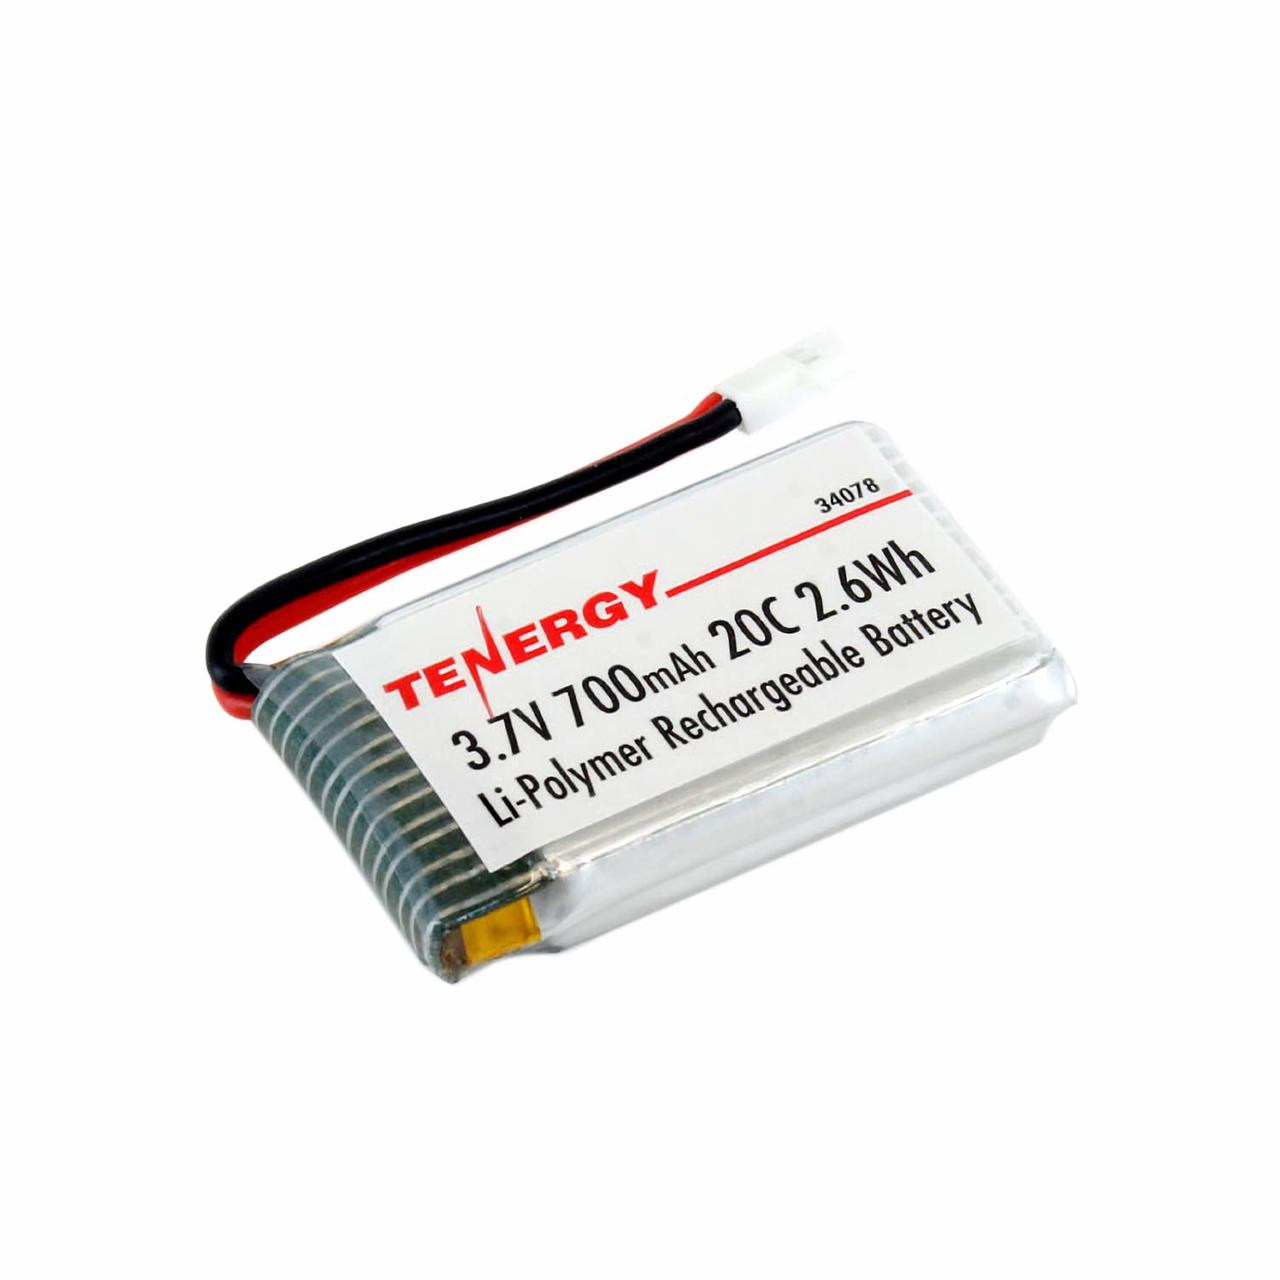 3.7V 700mAh LiPo Battery Pack (Compatible with Syma X5, X5C, X5SC, X5SW and Cheerson CX-30W)